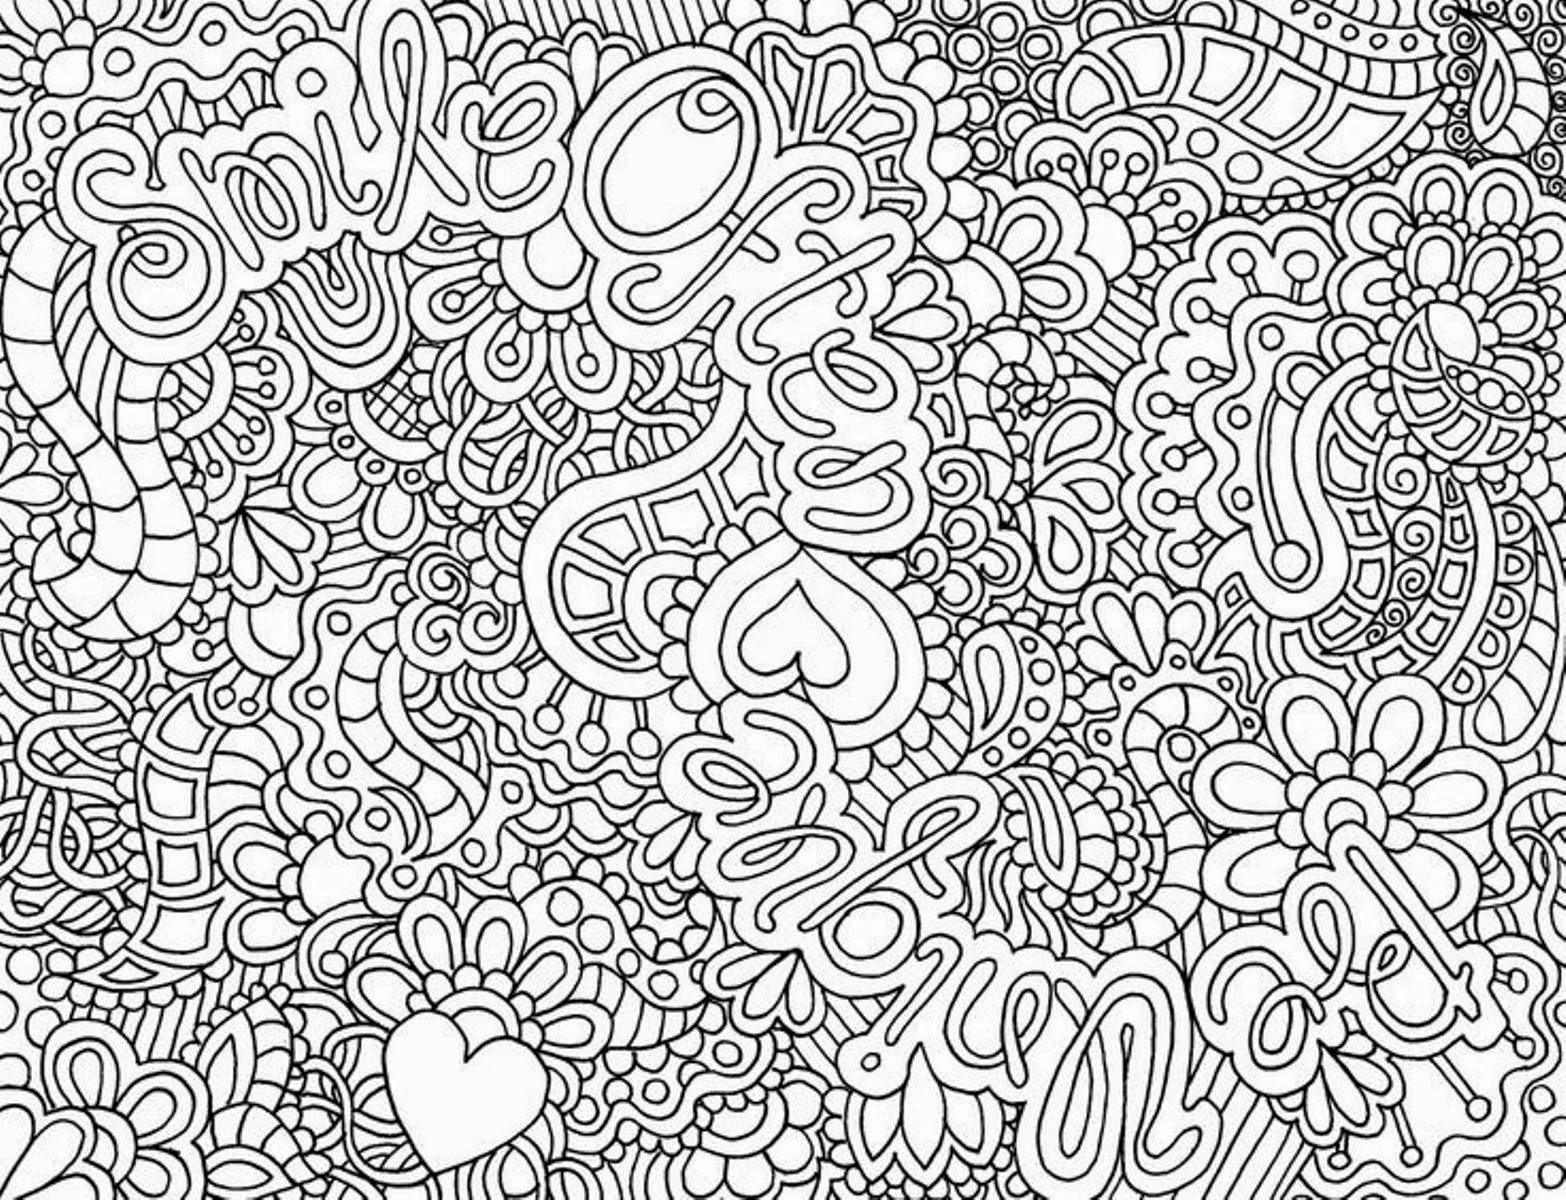 complicated coloring sheets a wolf illustrations blog september 2010 complicated coloring sheets